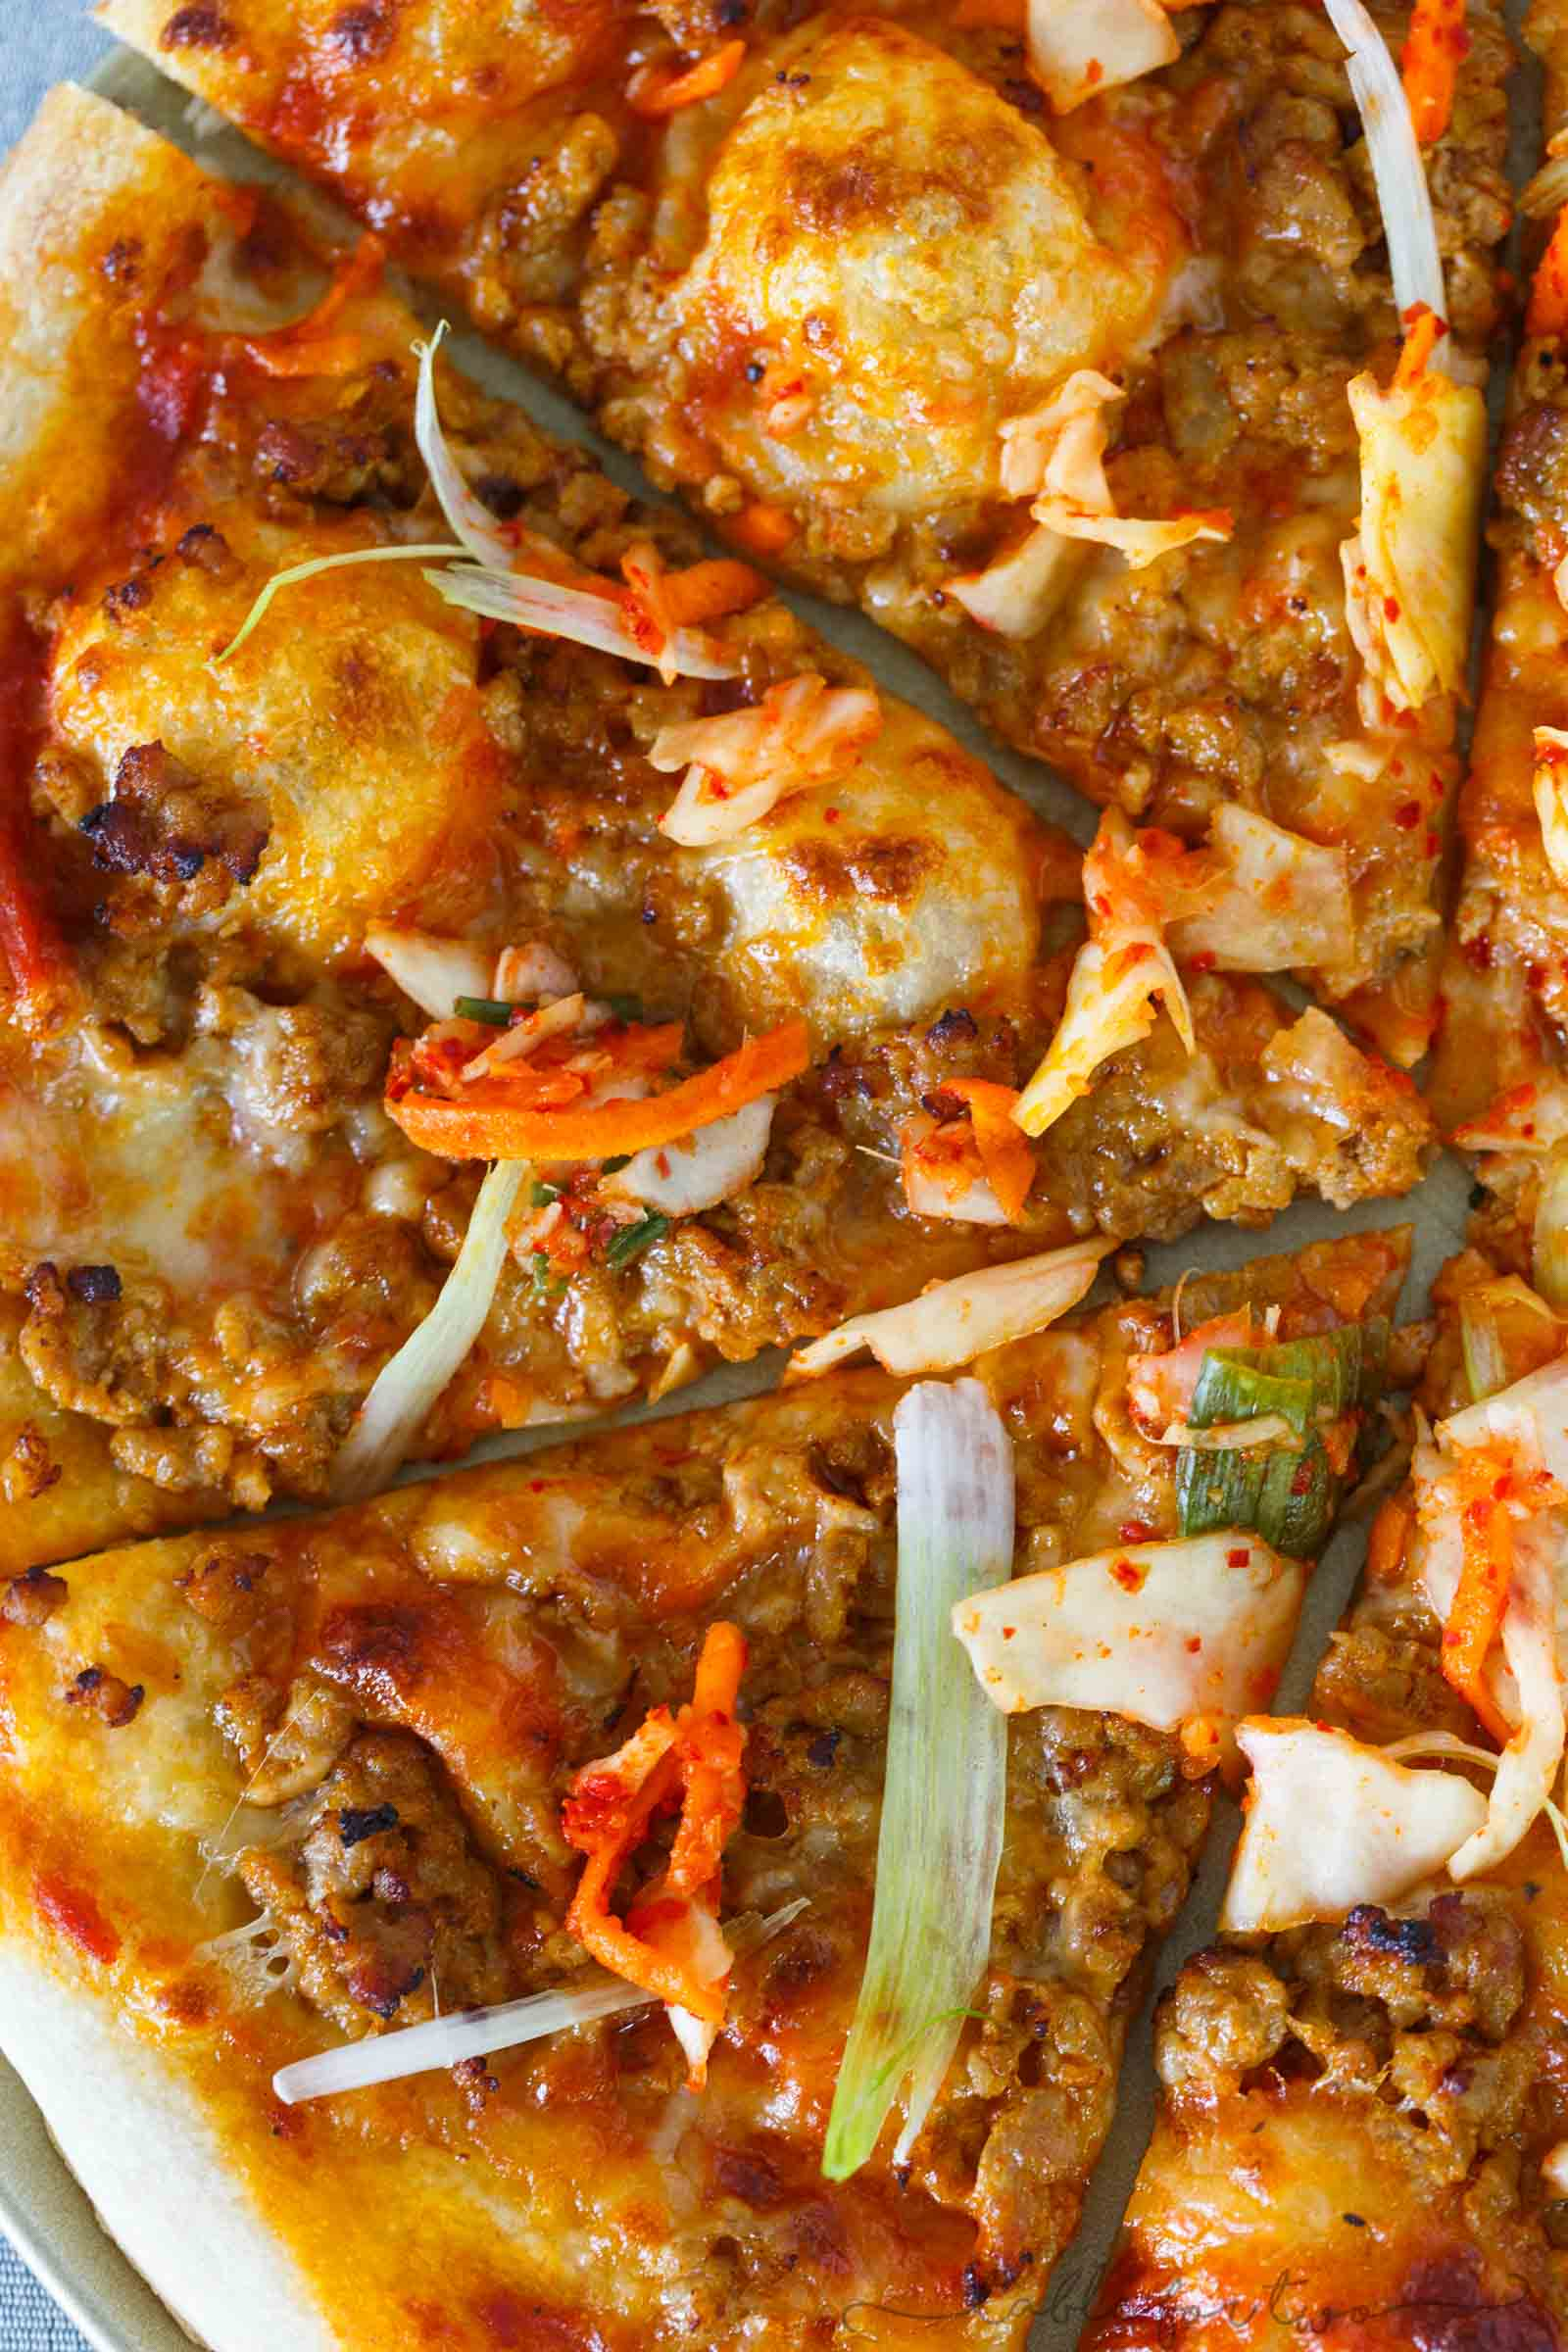 Italy meets Korea in this unique spicy Korean pork pizza recipe! This is a completely fun new way to make and eat pizza if you are a fan of Korean and Asian flavors! The flavors are so bold and perfectly balanced!